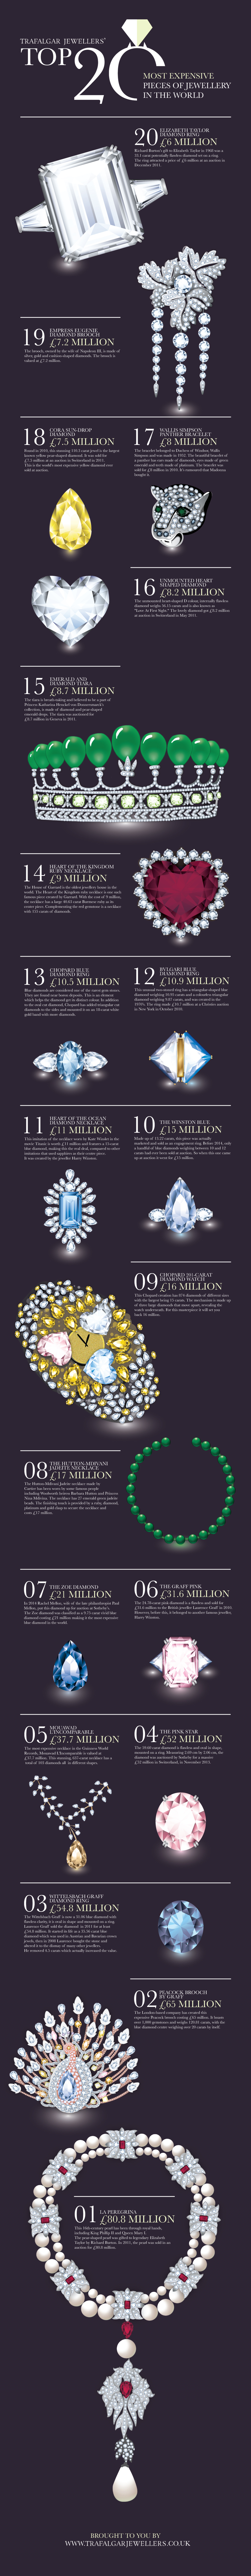 Top 20 Most Expensive Pieces of Jewellery in the World